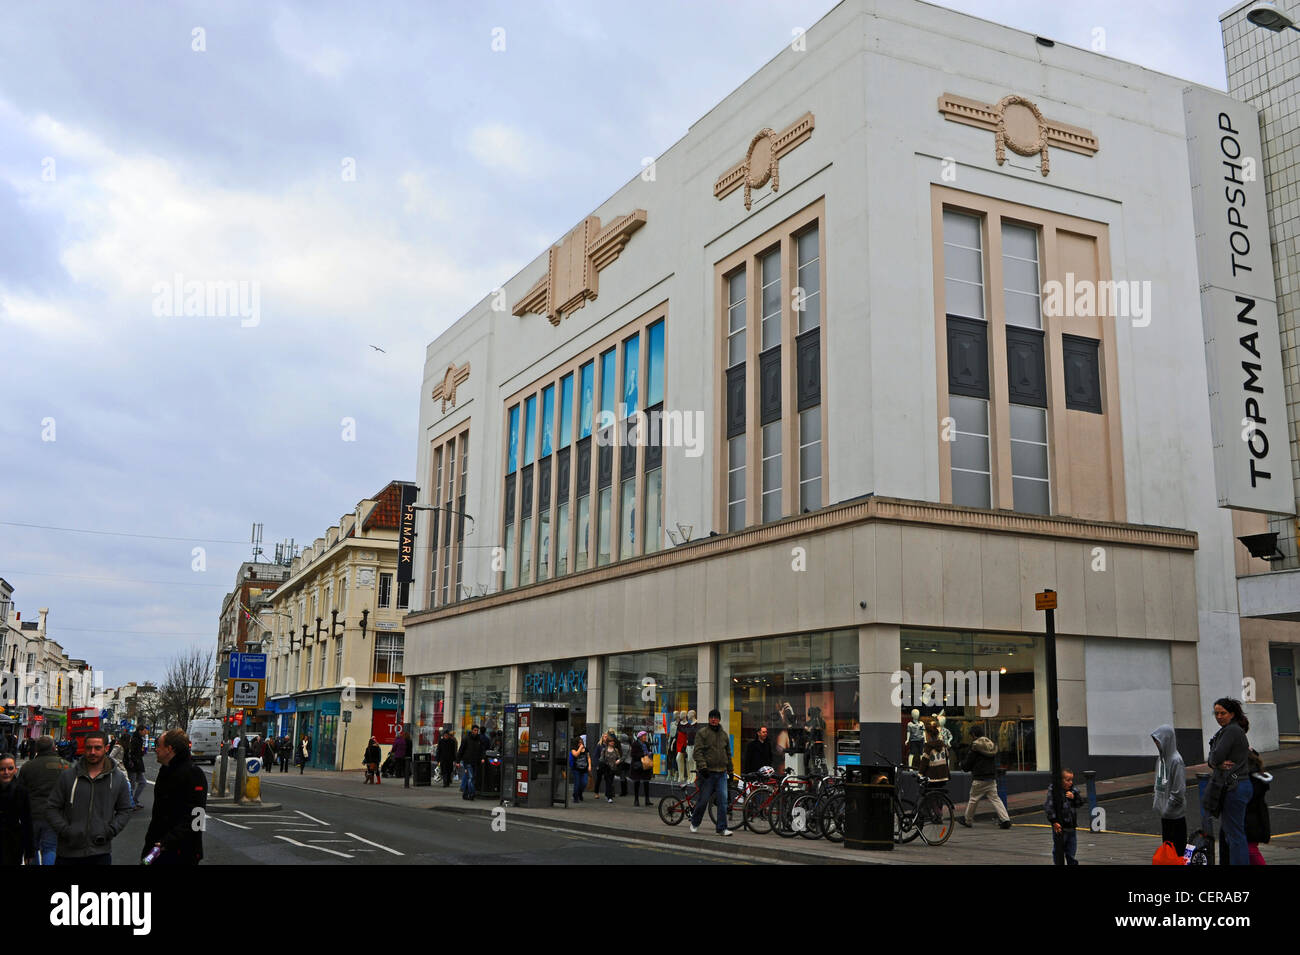 Primark Deco Primark Department Store In Art Deco Style Building